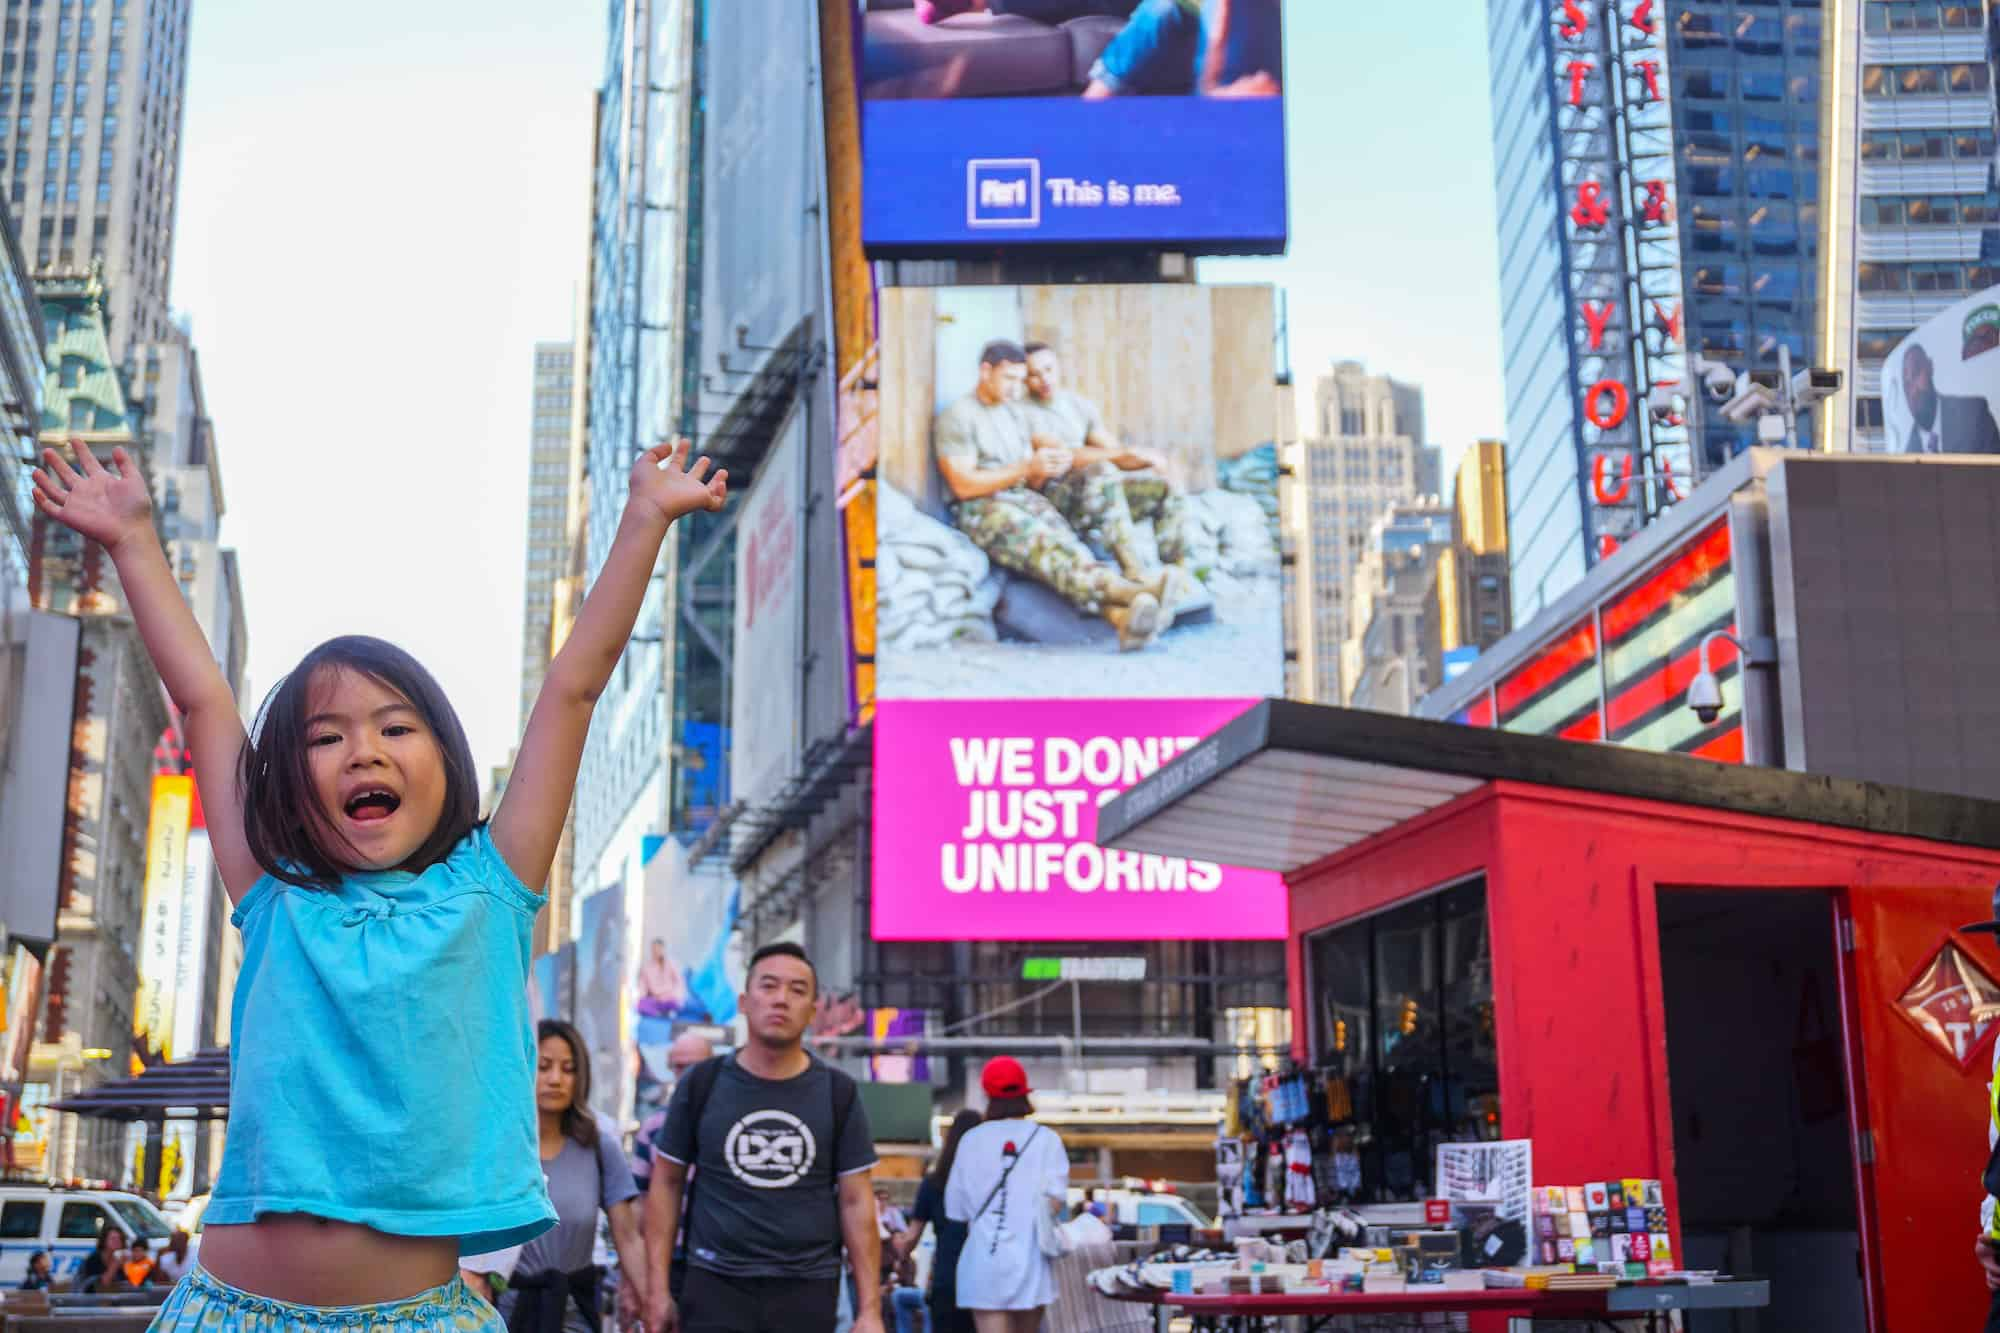 A New York City Tour with Adventures by Disney